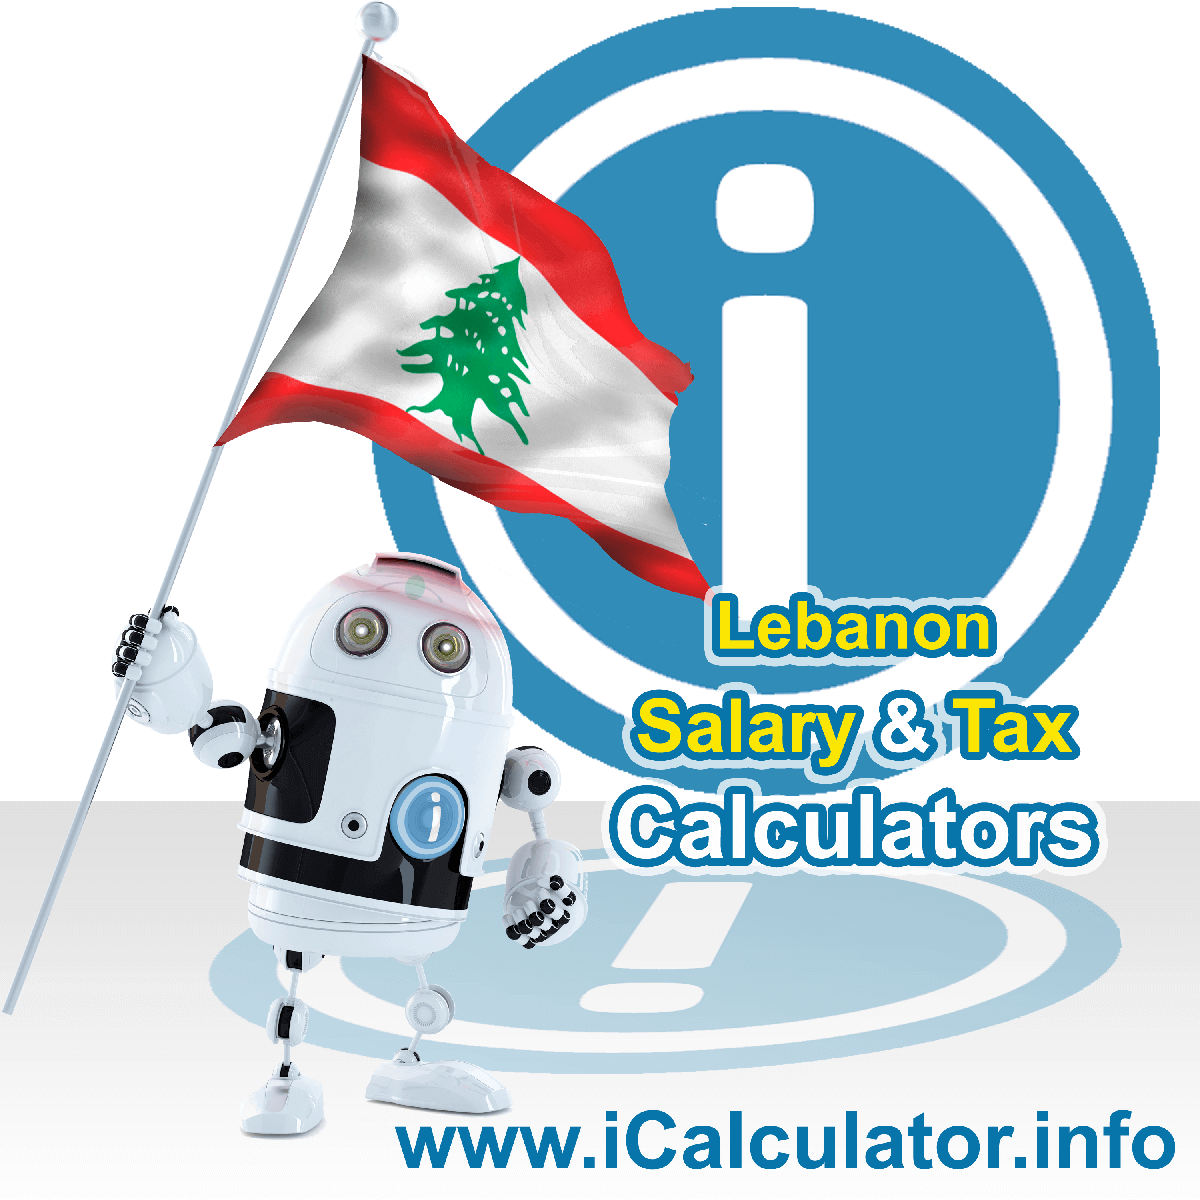 Lebanon Wage Calculator. This image shows the Lebanon flag and information relating to the tax formula for the Lebanon Tax Calculator